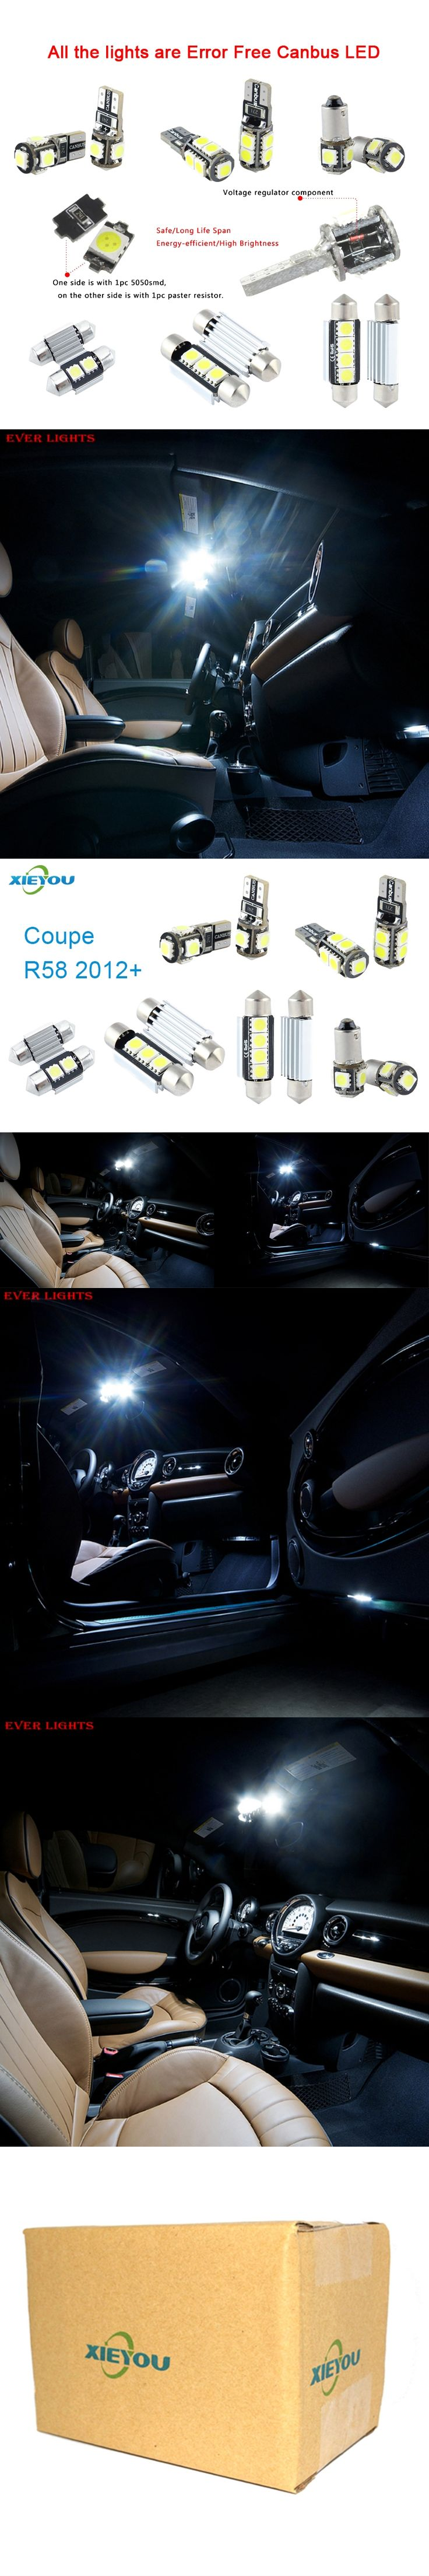 low voltage interior lighting kits%0A  pcs LED Canbus Interior Lights Kit Package For Mini Coupe R